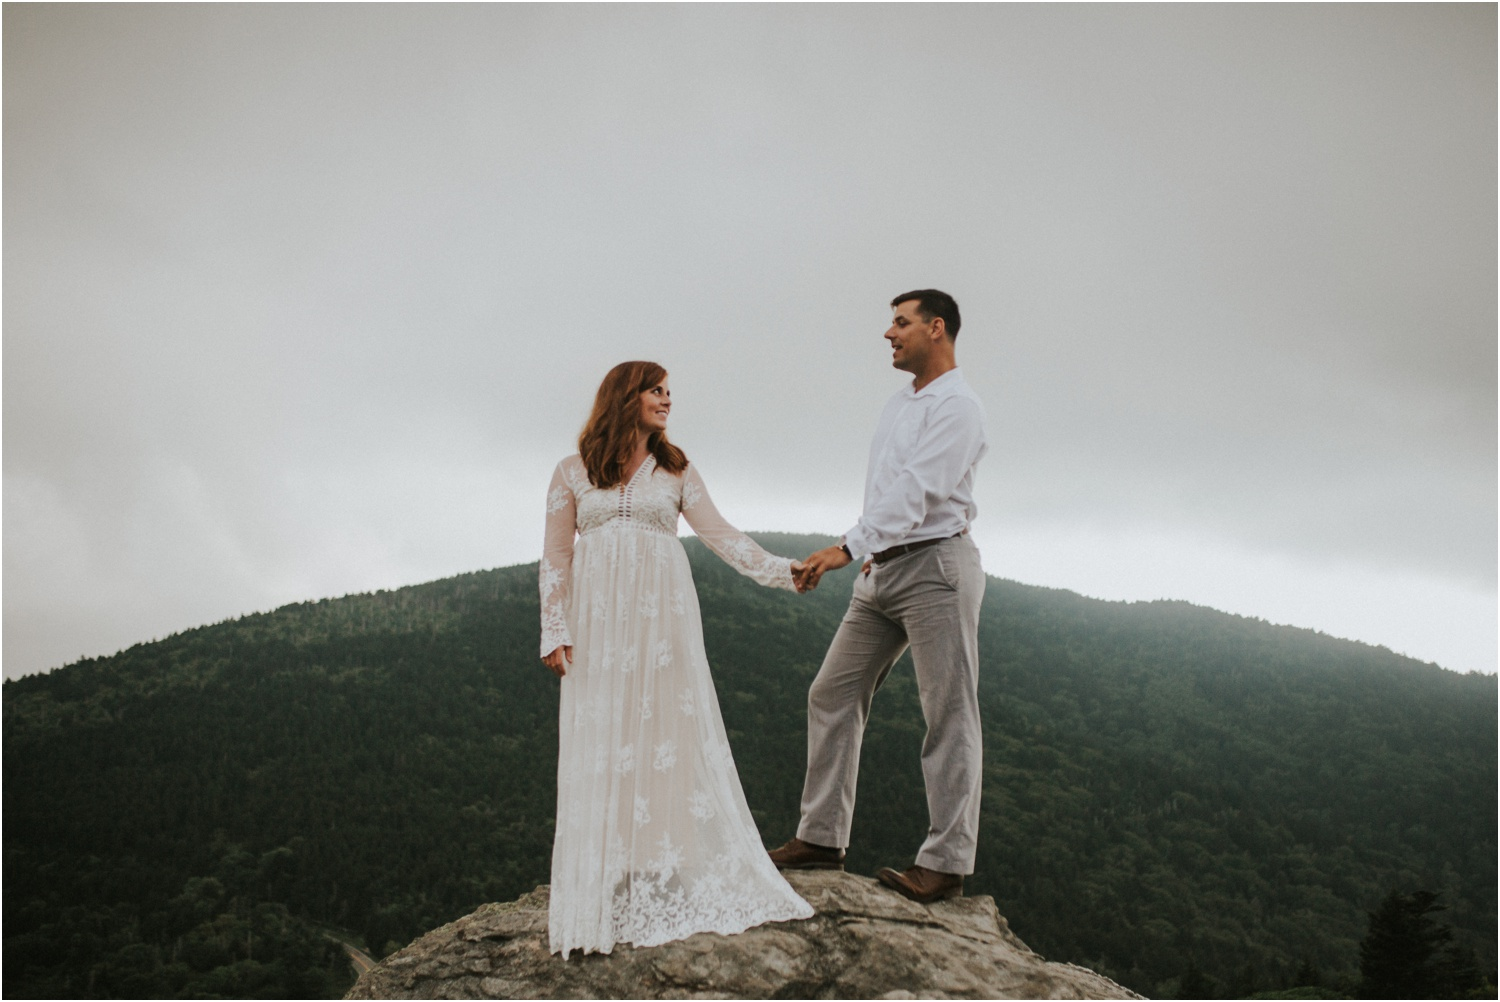 lovestoriesco-asheville-north-carolina-elopement-wedding-10.jpg